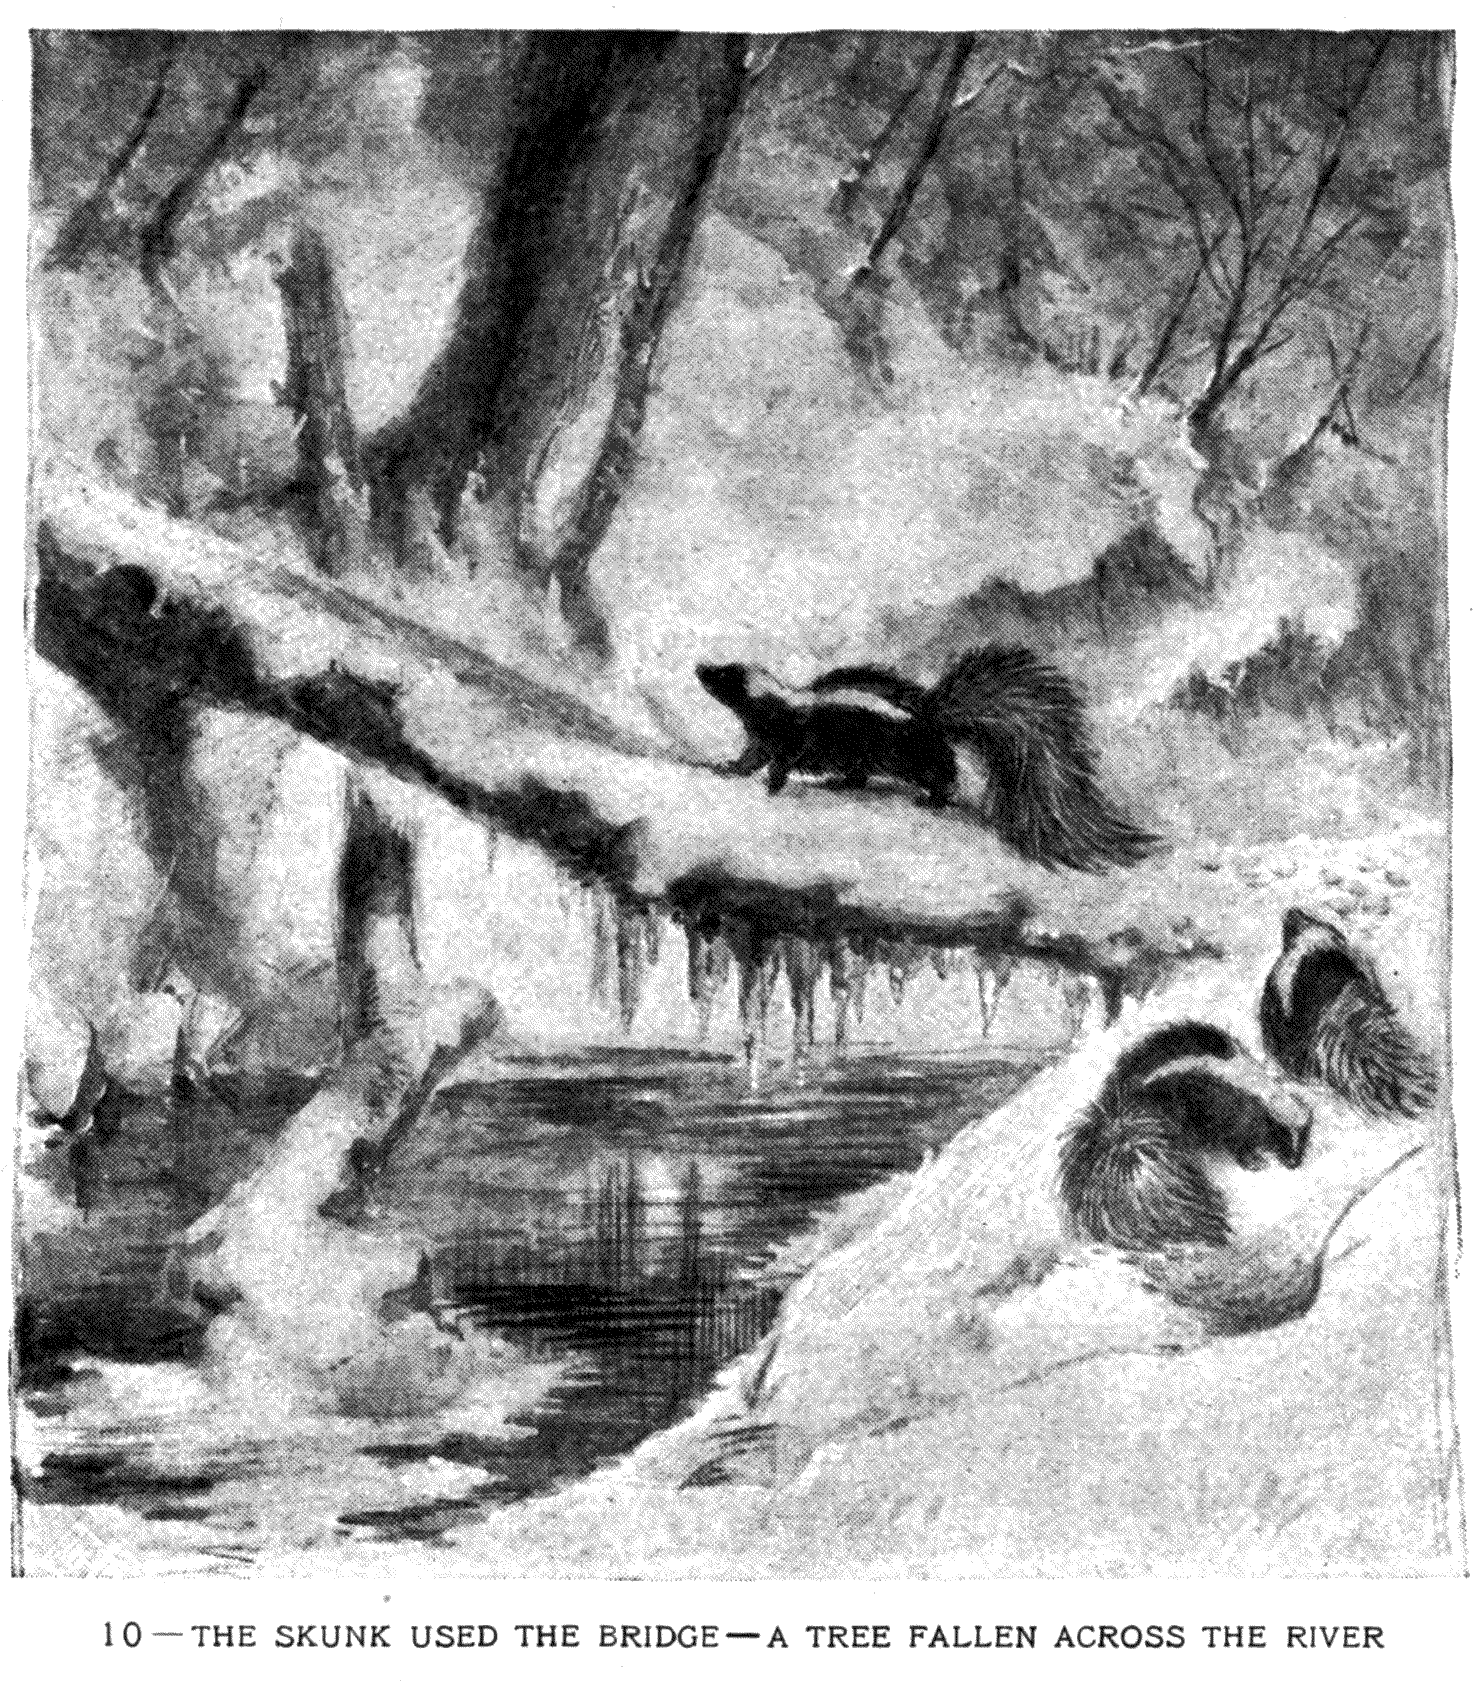 10 – THE SKUNK USED THE BRIDGE – A TREE FALLEN ACROSS THE RIVER